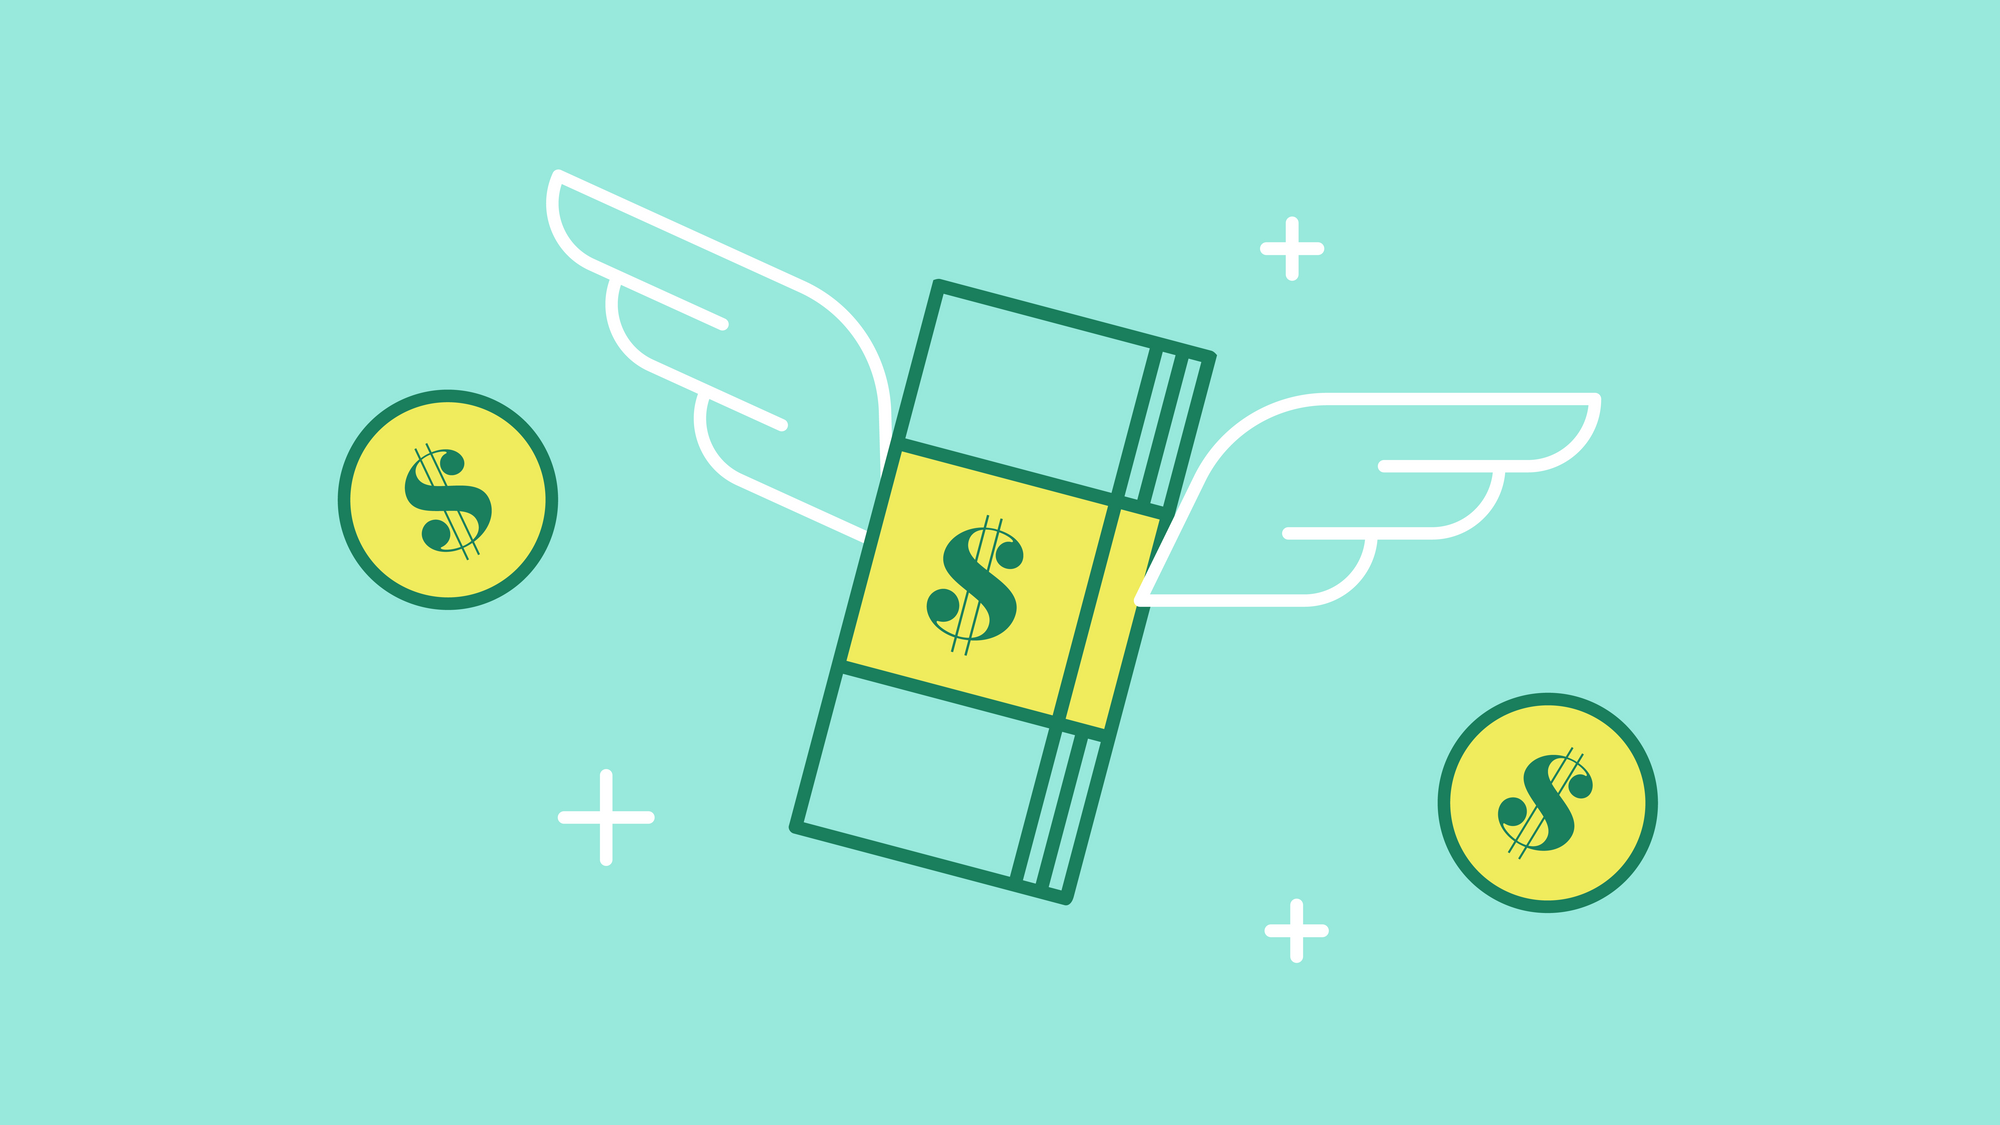 Graphic of dollar with angel wings flying alongside coins.